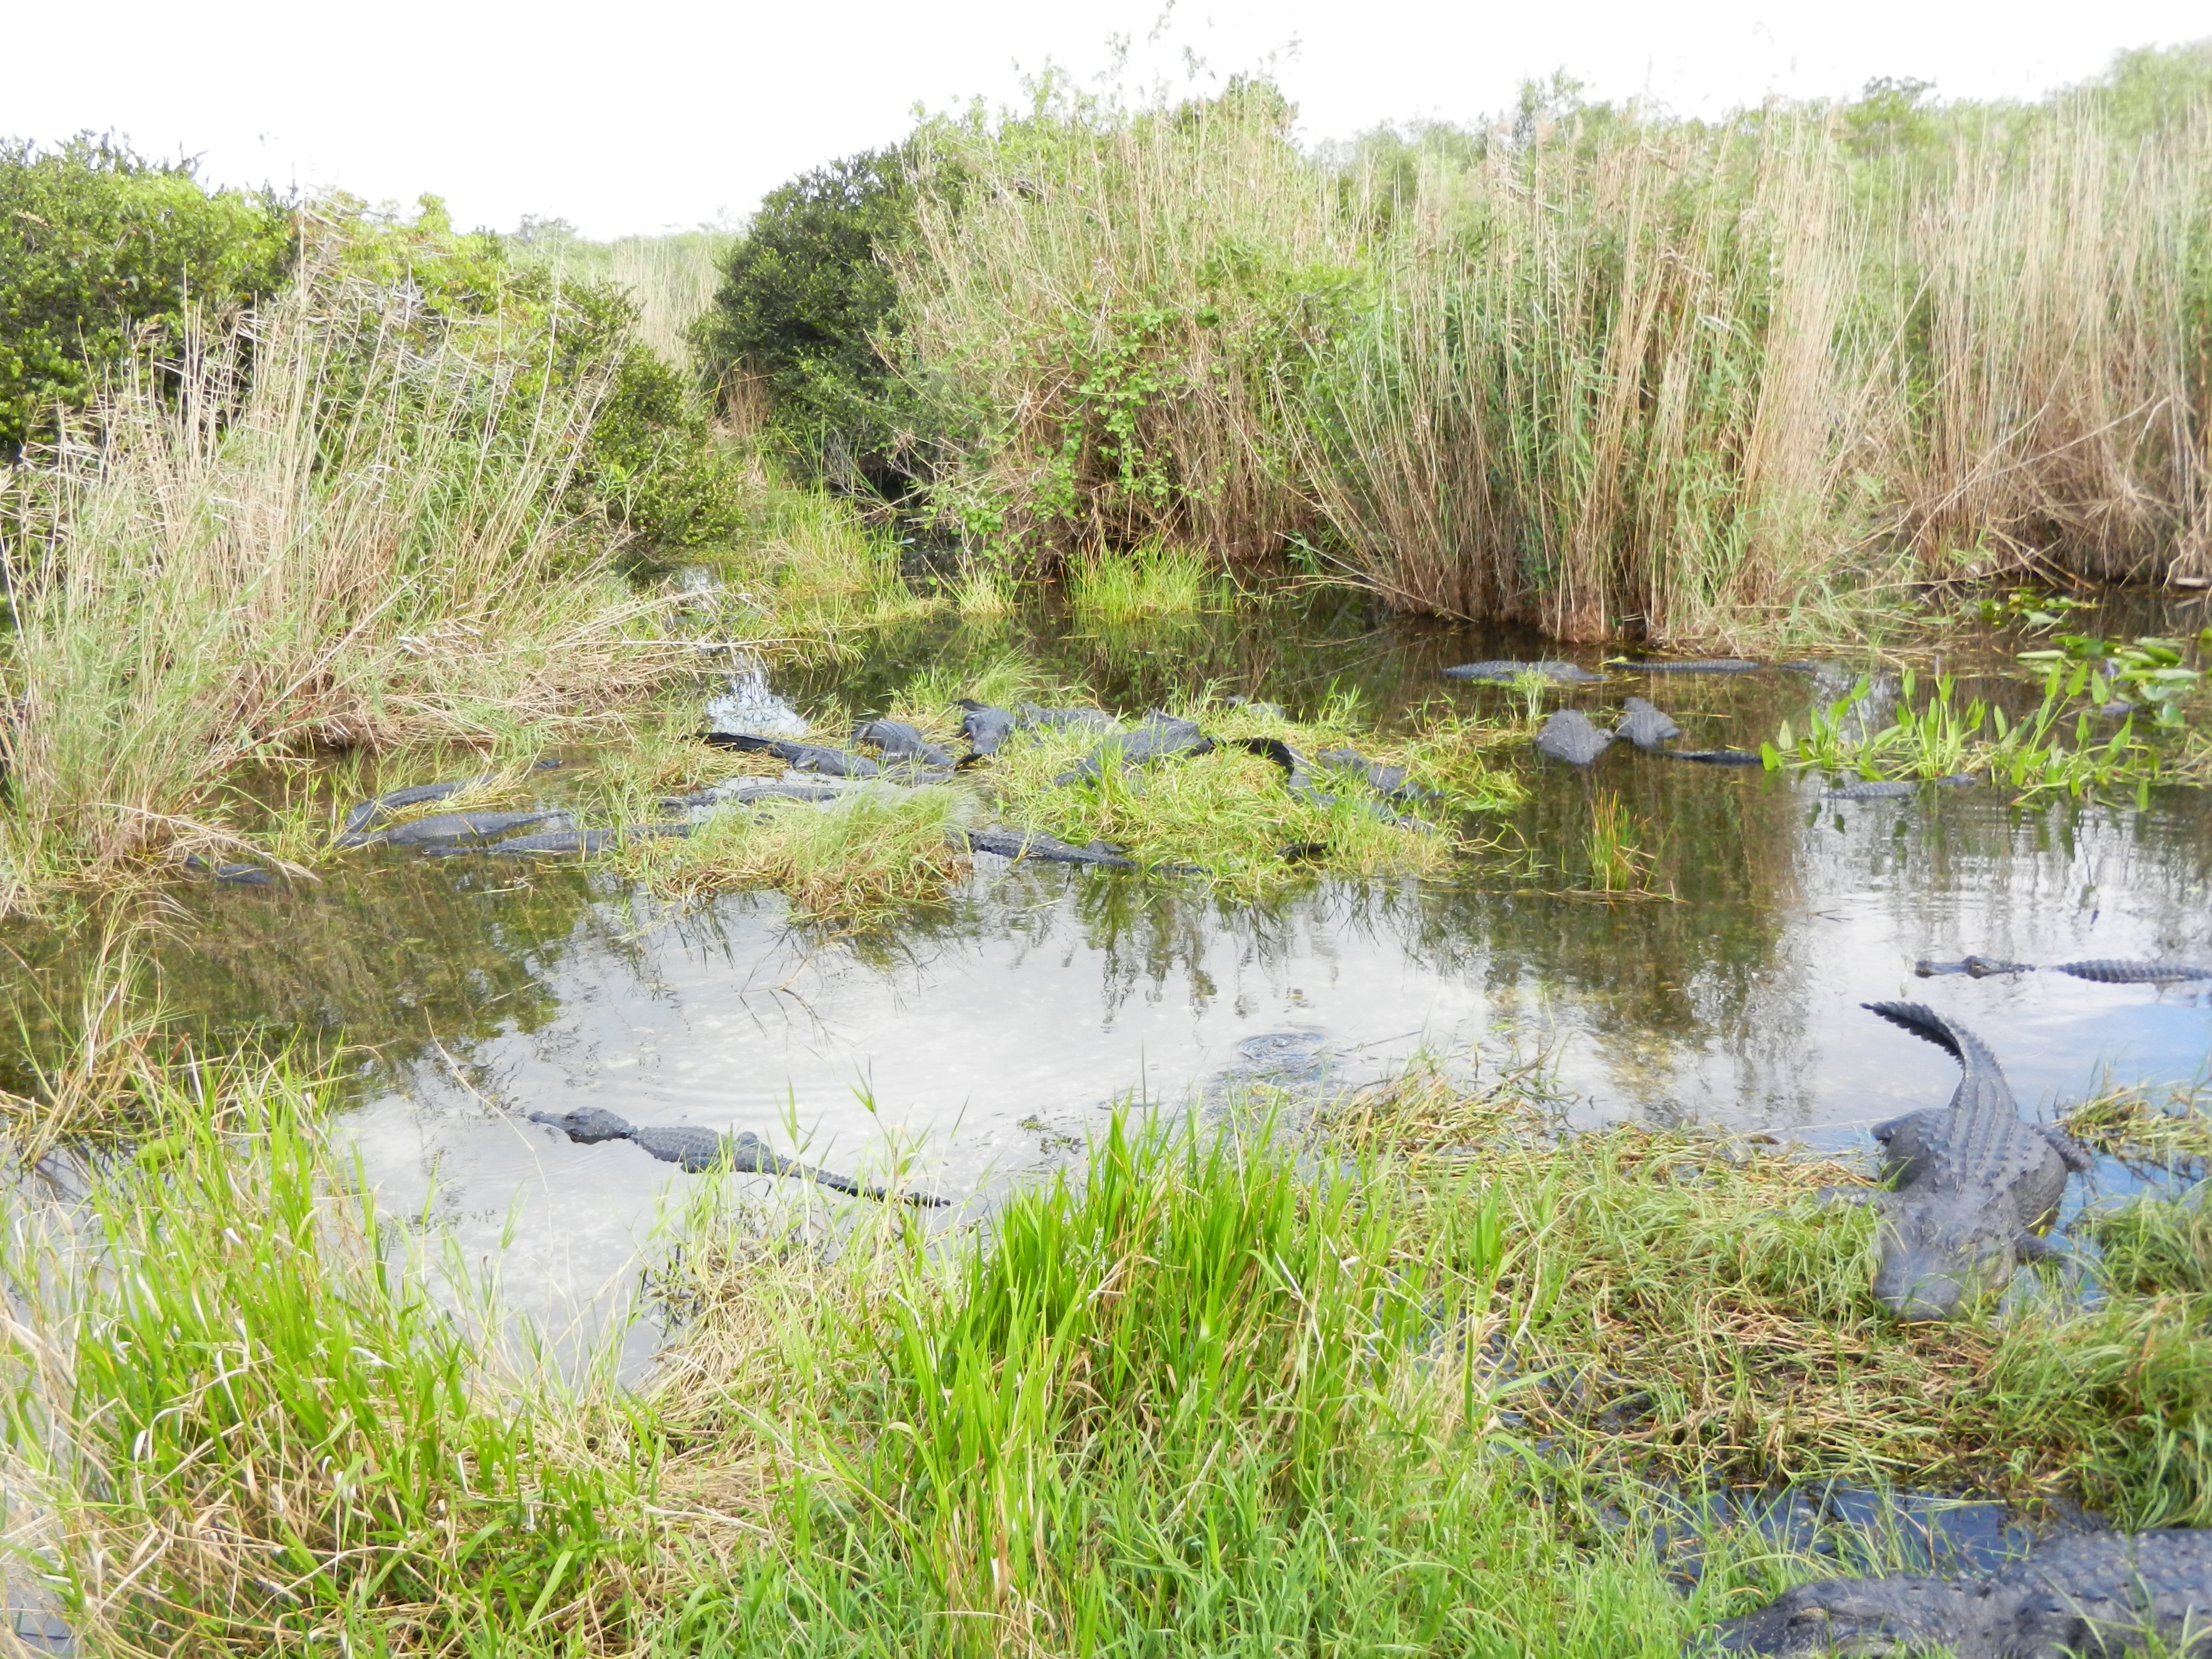 Large group of alligators in a marshy area.